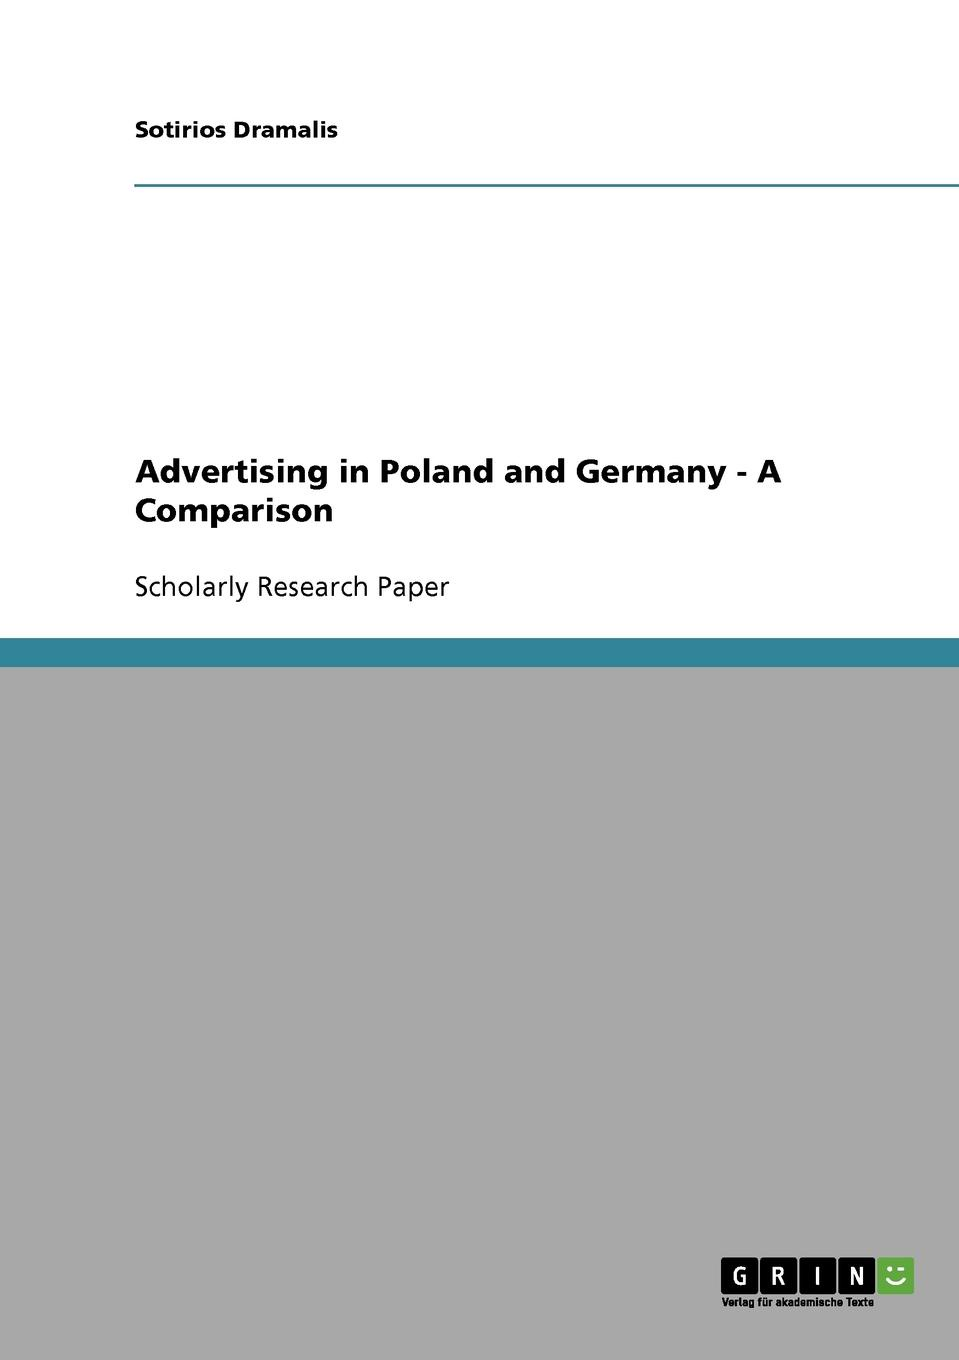 все цены на Sotirios Dramalis Advertising in Poland and Germany - A Comparison онлайн